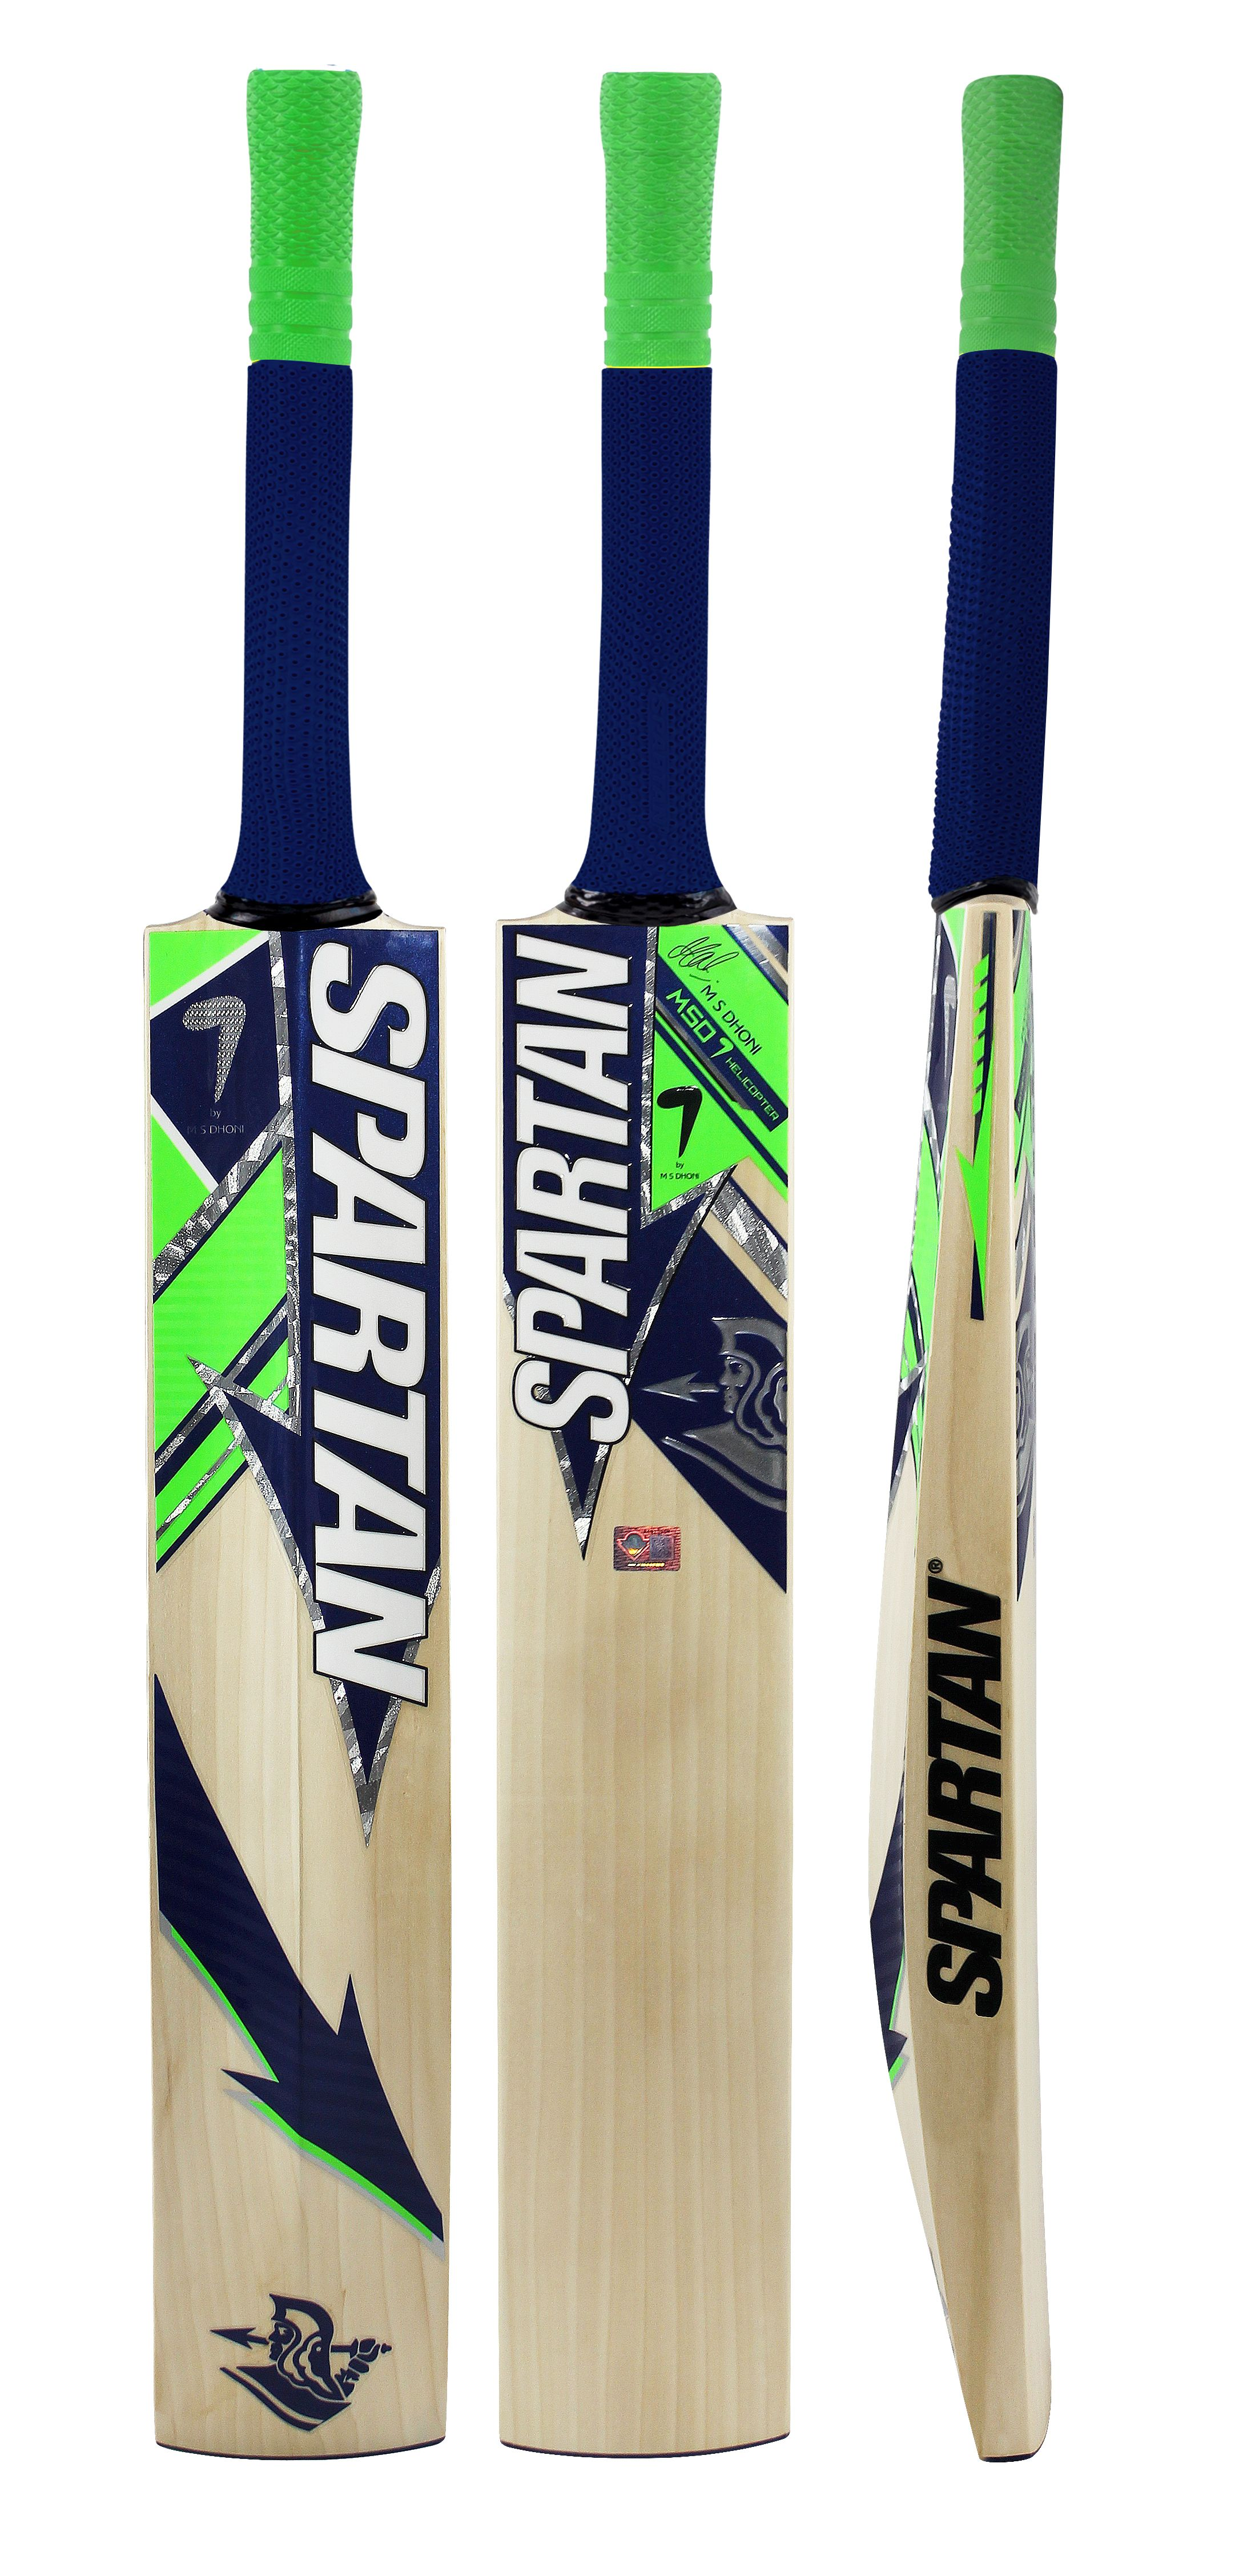 Msd Helicopter Full Size Bat Spartan Sports Cricket Bat Cricket Equipment Cricket Teams